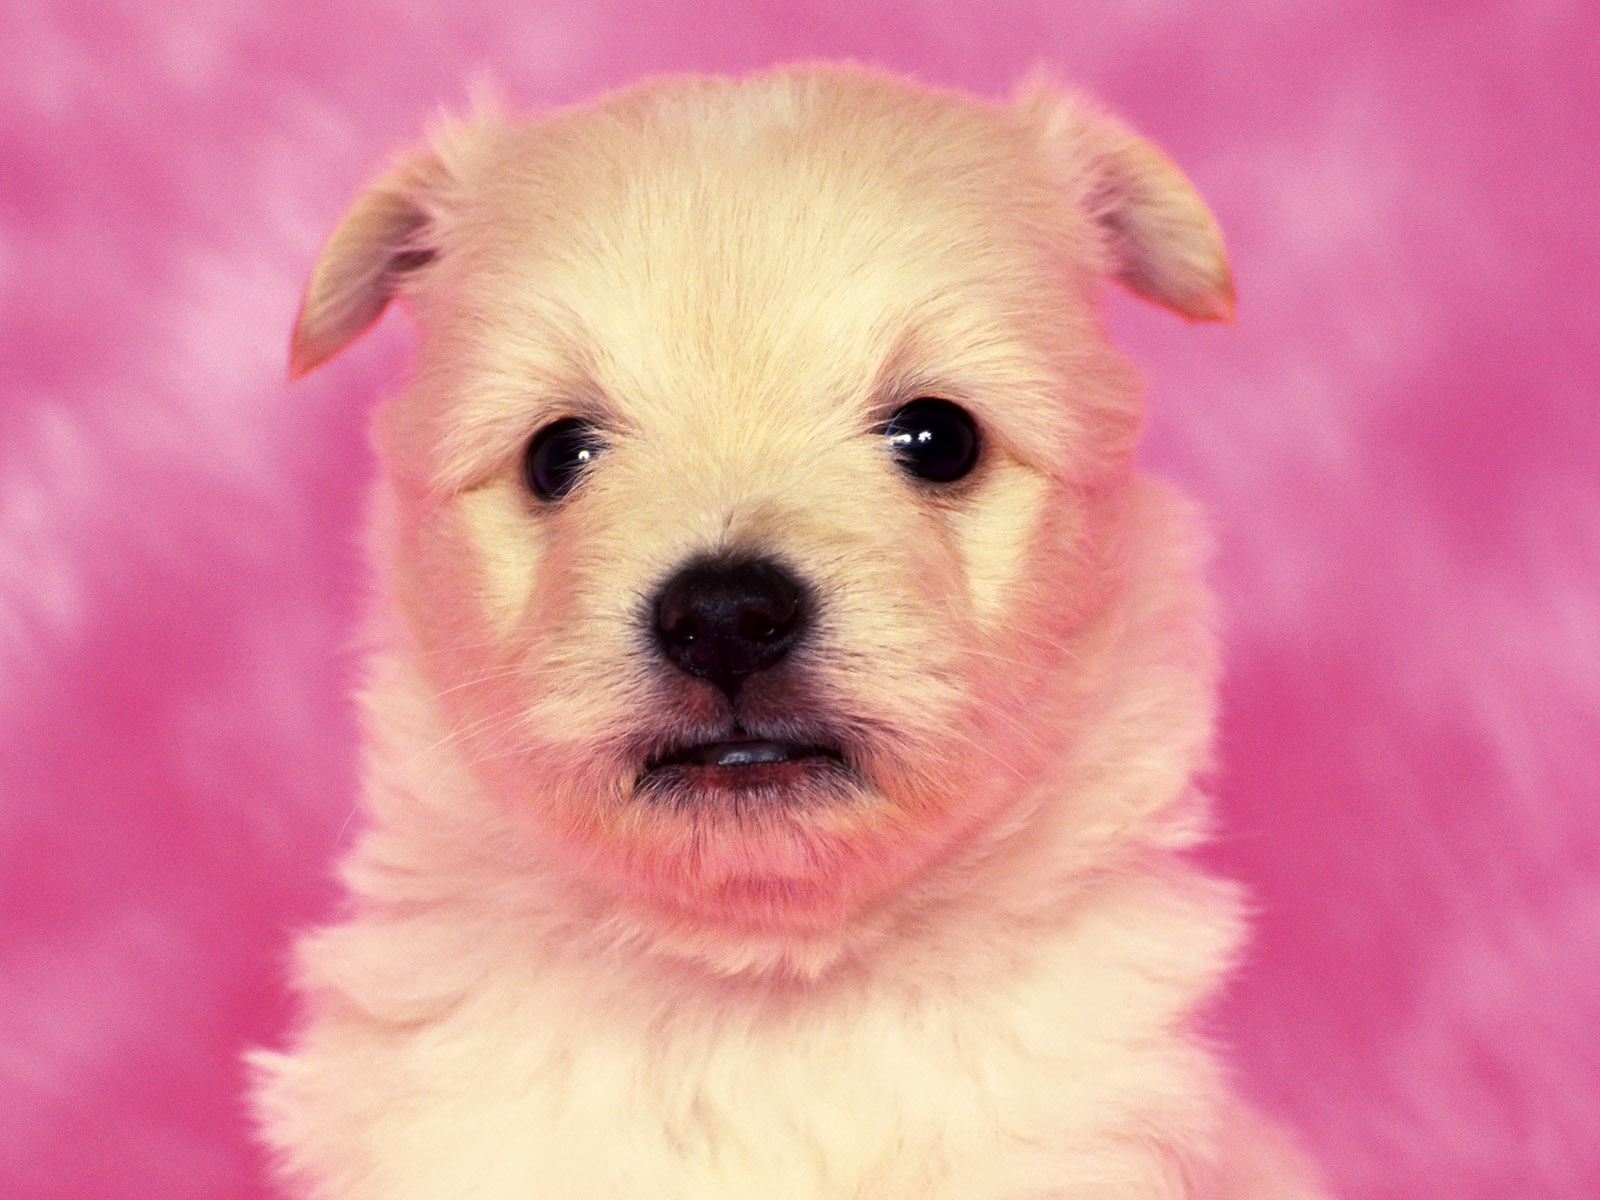 Free Download Cute Puppy Dog Wallpaper Wallpaper Me 1600x1200 For Your Desktop Mobile Tablet Explore 74 Cute Dogs Wallpapers Christmas Puppies Wallpaper Free Puppy Wallpapers Puppies Wallpaper